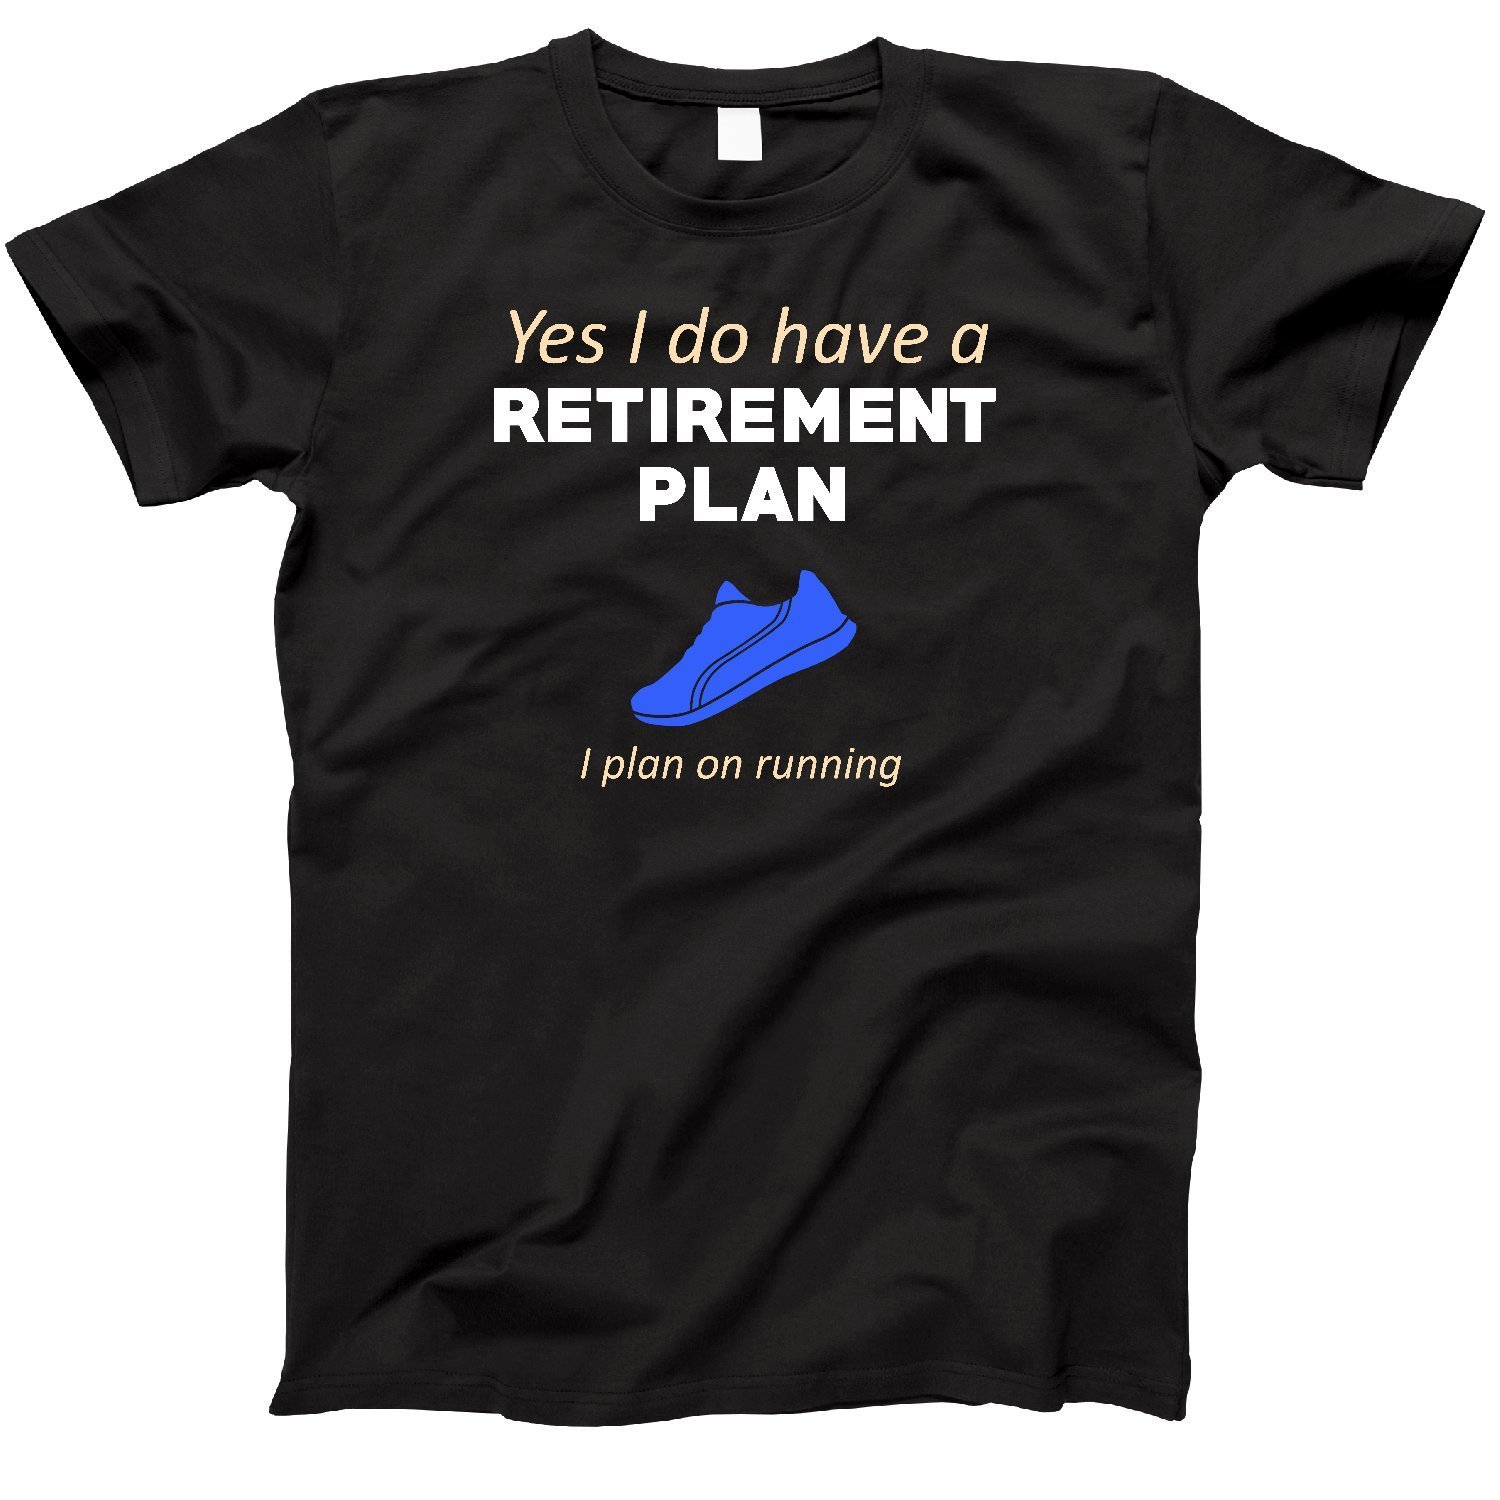 2019 summer style Fashion Retirement Plan Runner Retired Runner Gift T-Shirt Tee shirt image